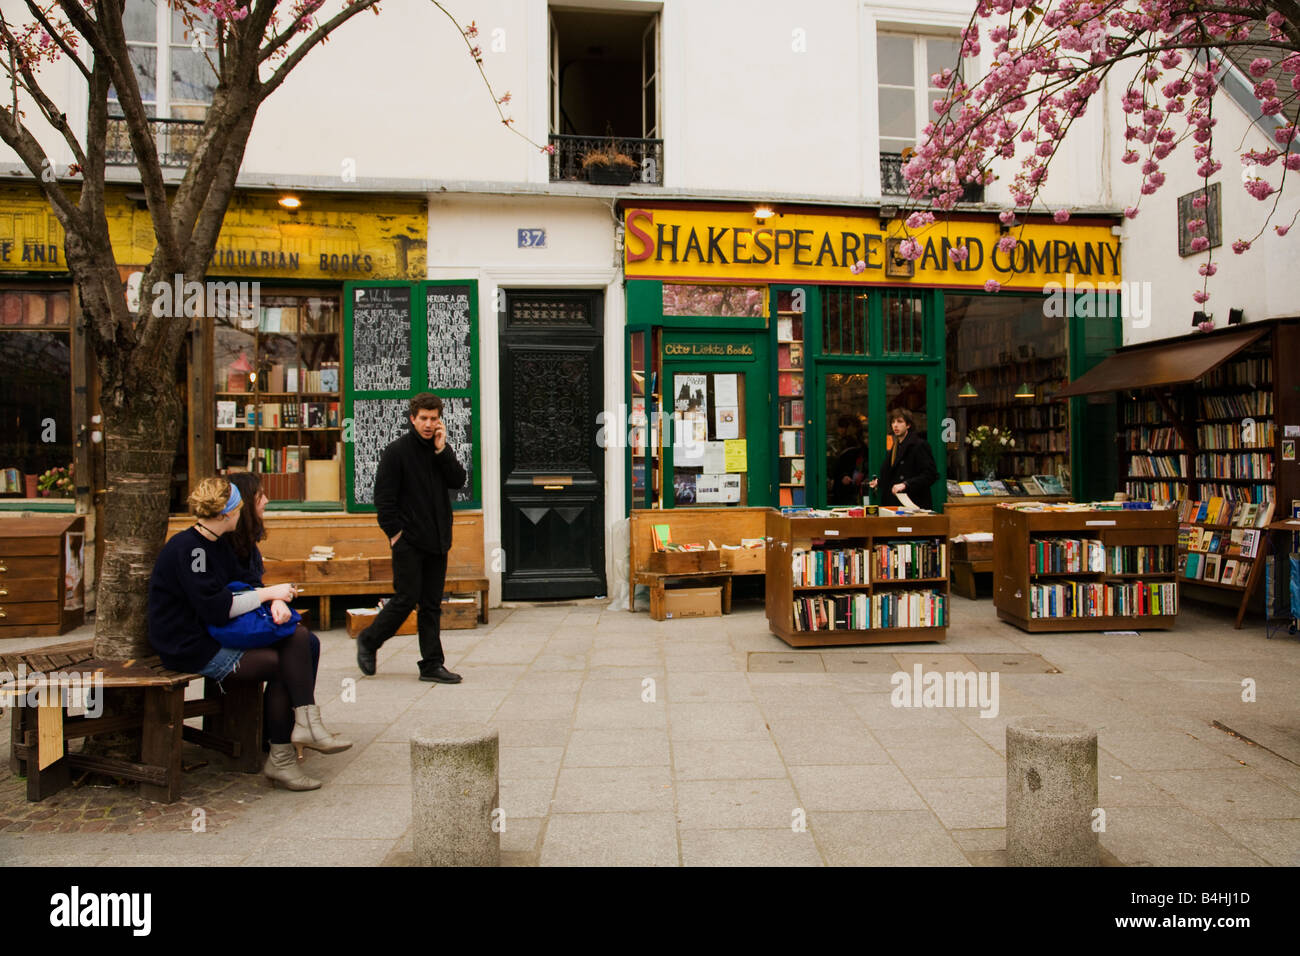 Shakespeare and Company Bookshop Left Bank Rive Gauche Paris France Europe - Stock Image